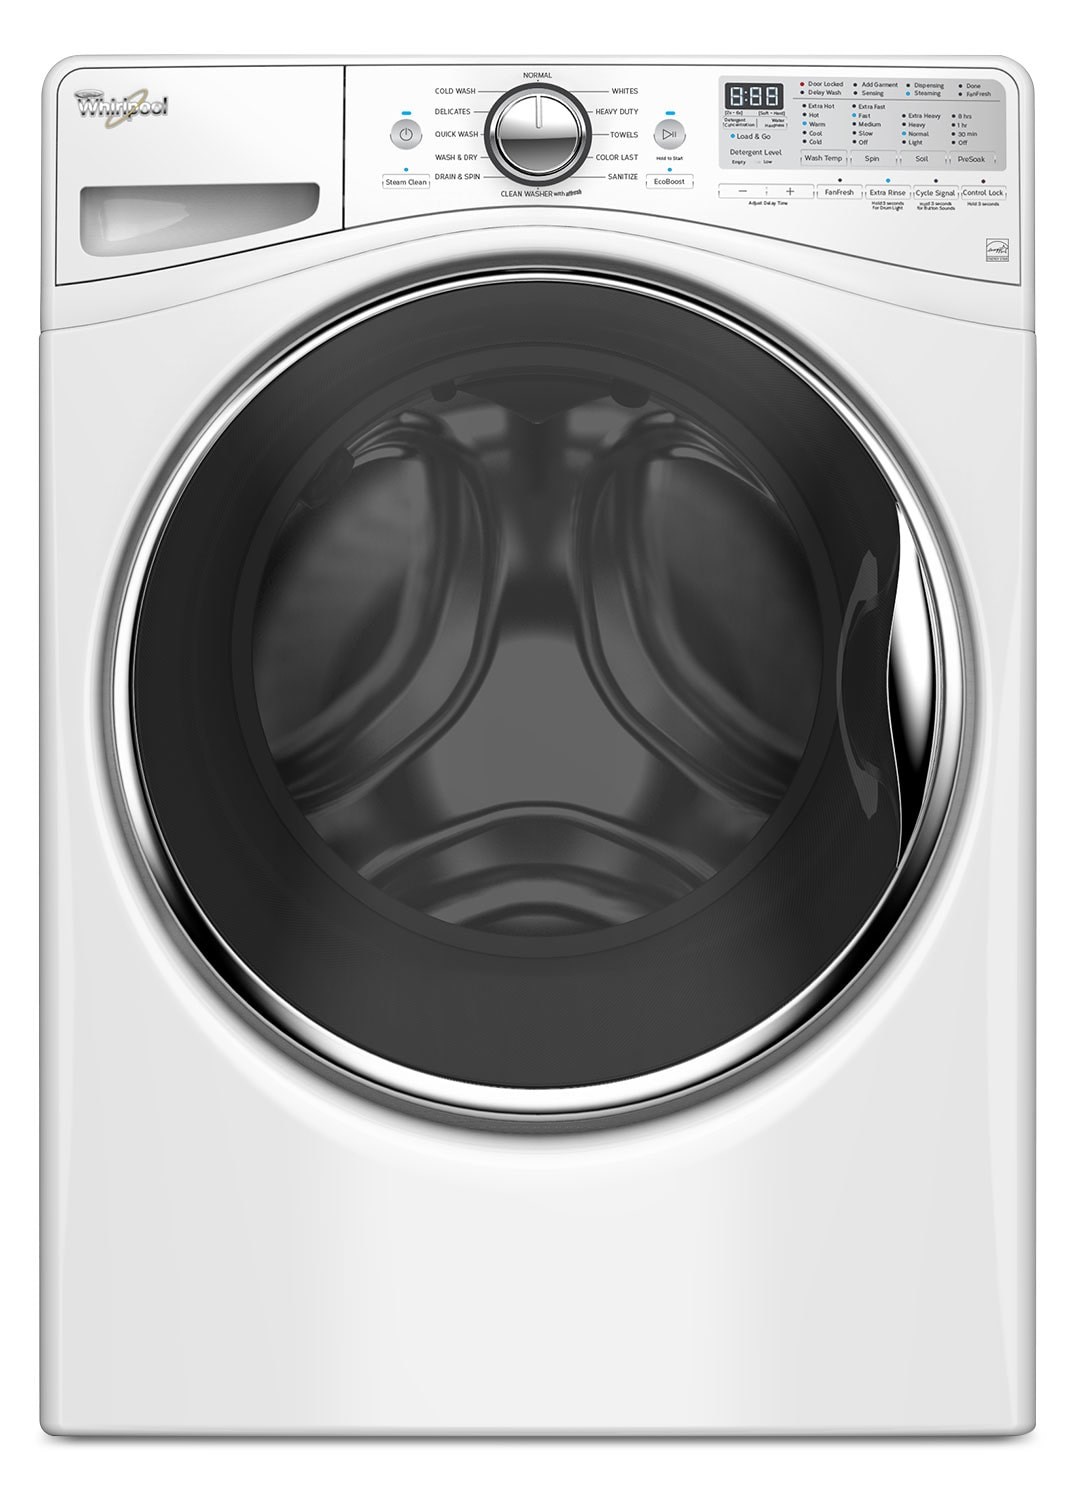 Whirlpool 4.8 Cu. Ft. Front-Load Washer – WFW9290FW